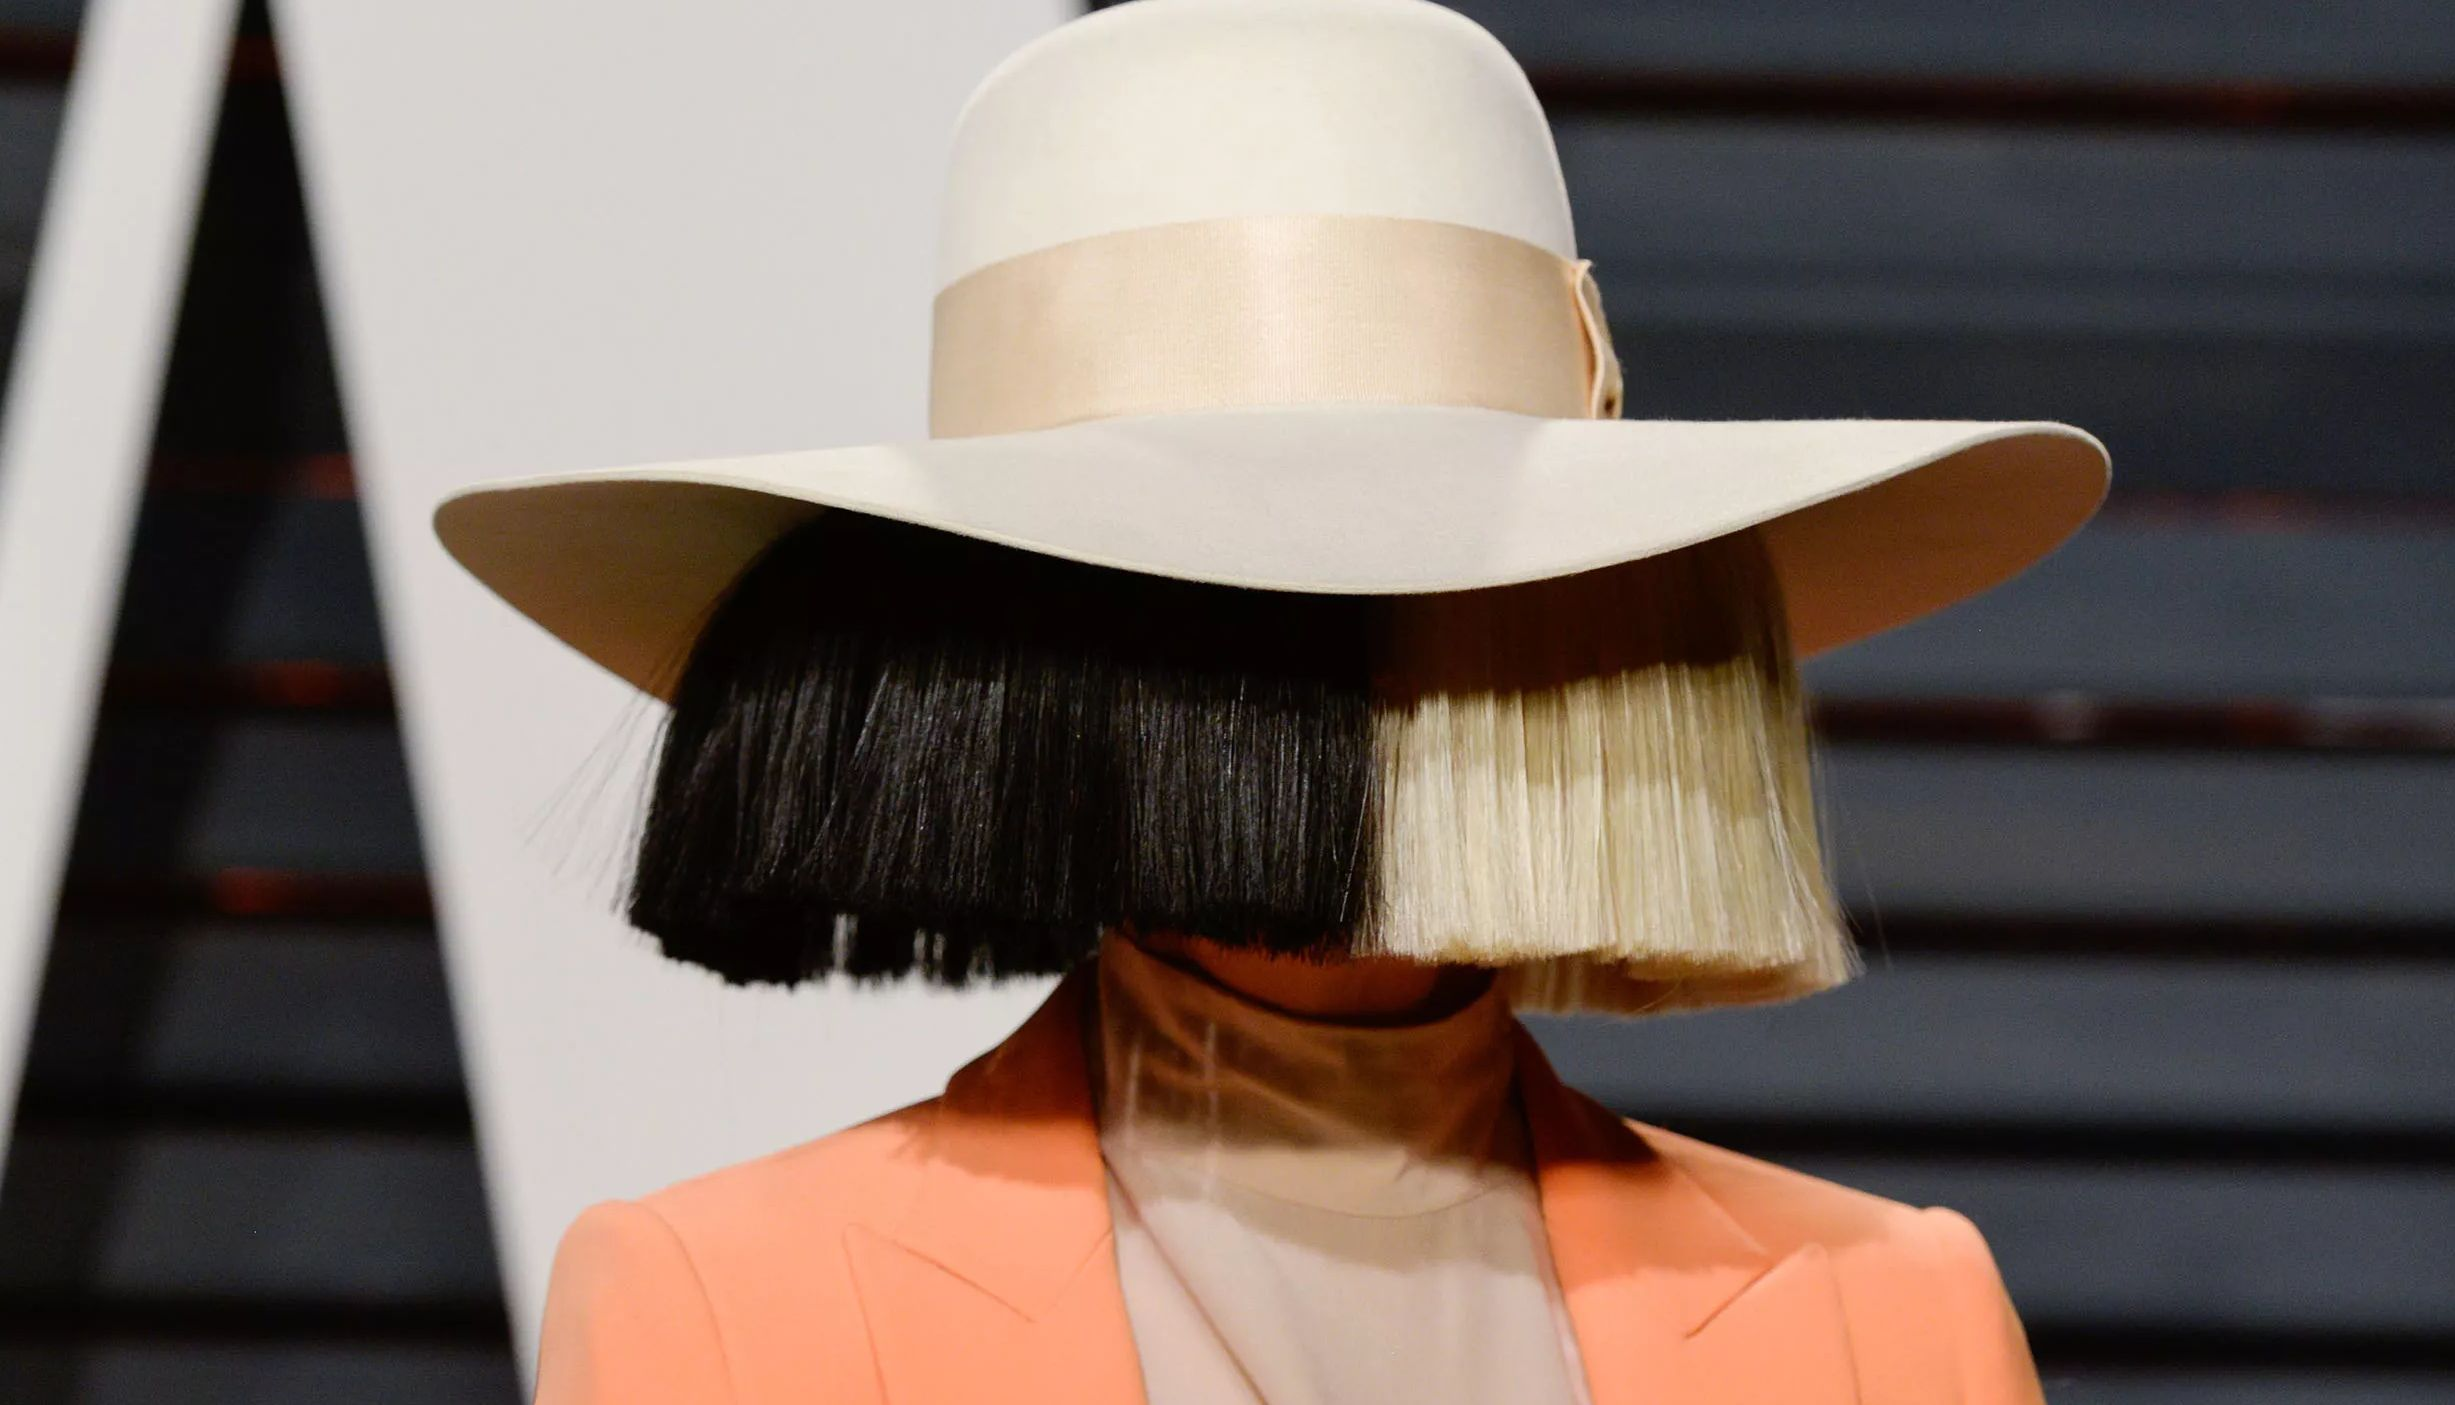 Sia with big wig on